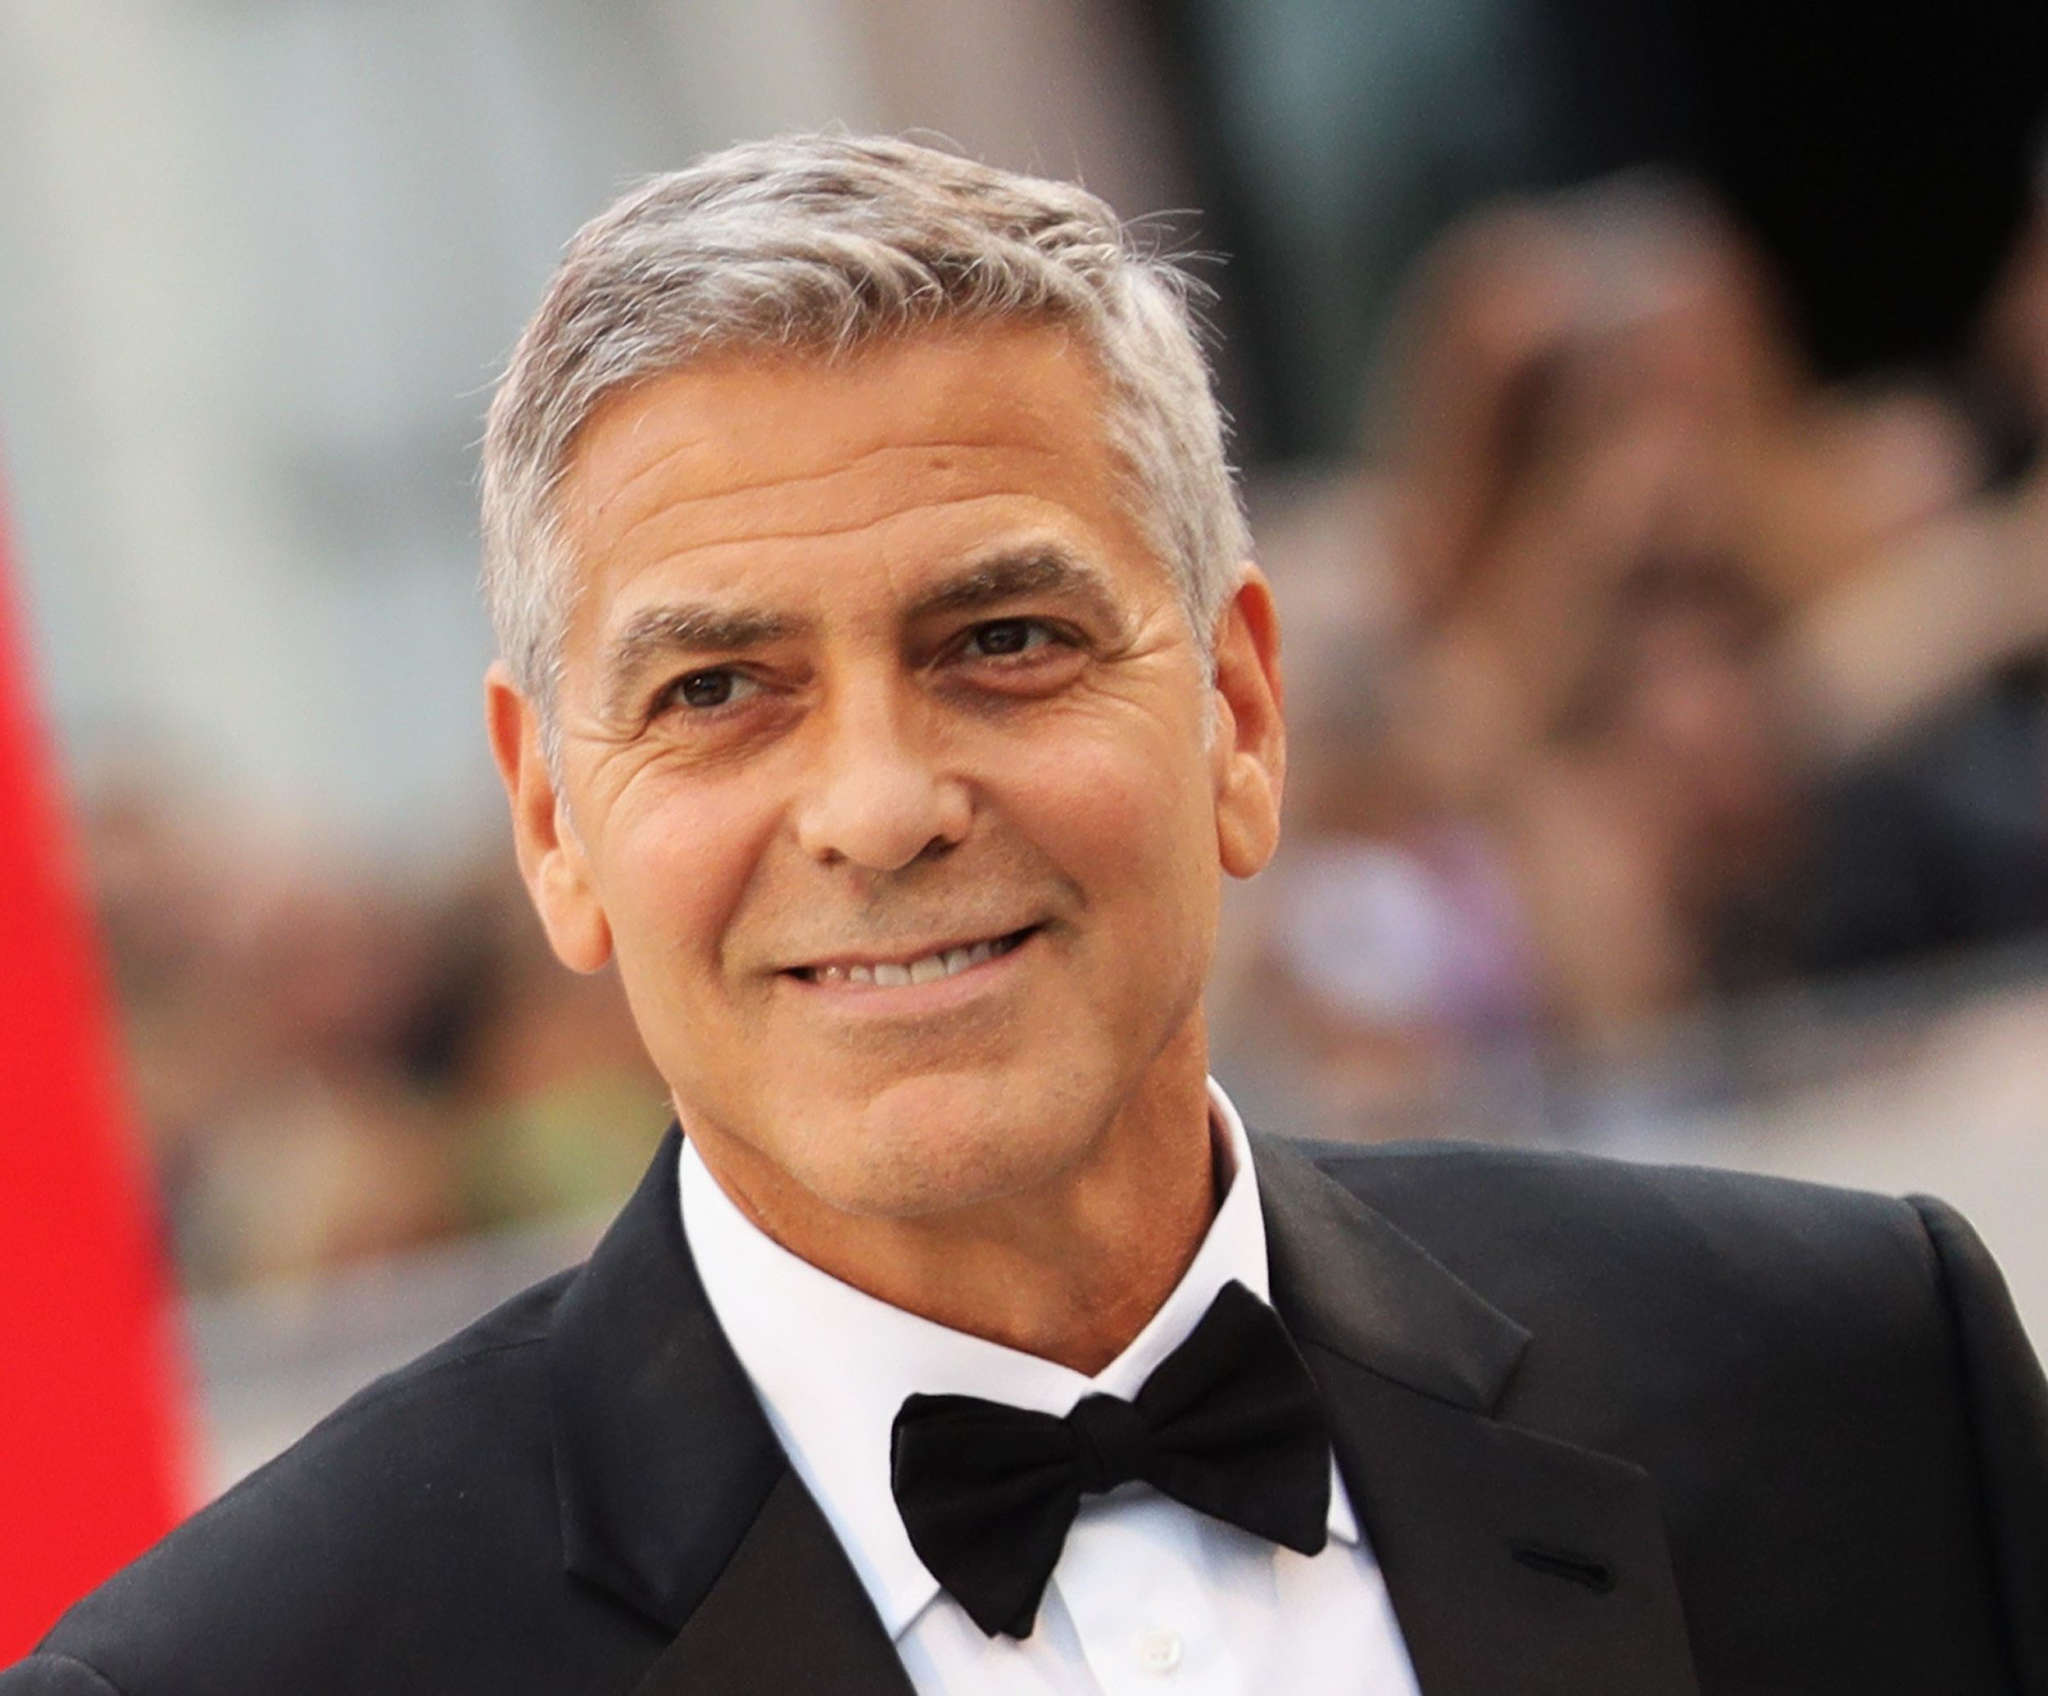 George Clooney Writes Highly effective Essay About Racism In America – It's 'Our Pandemic'